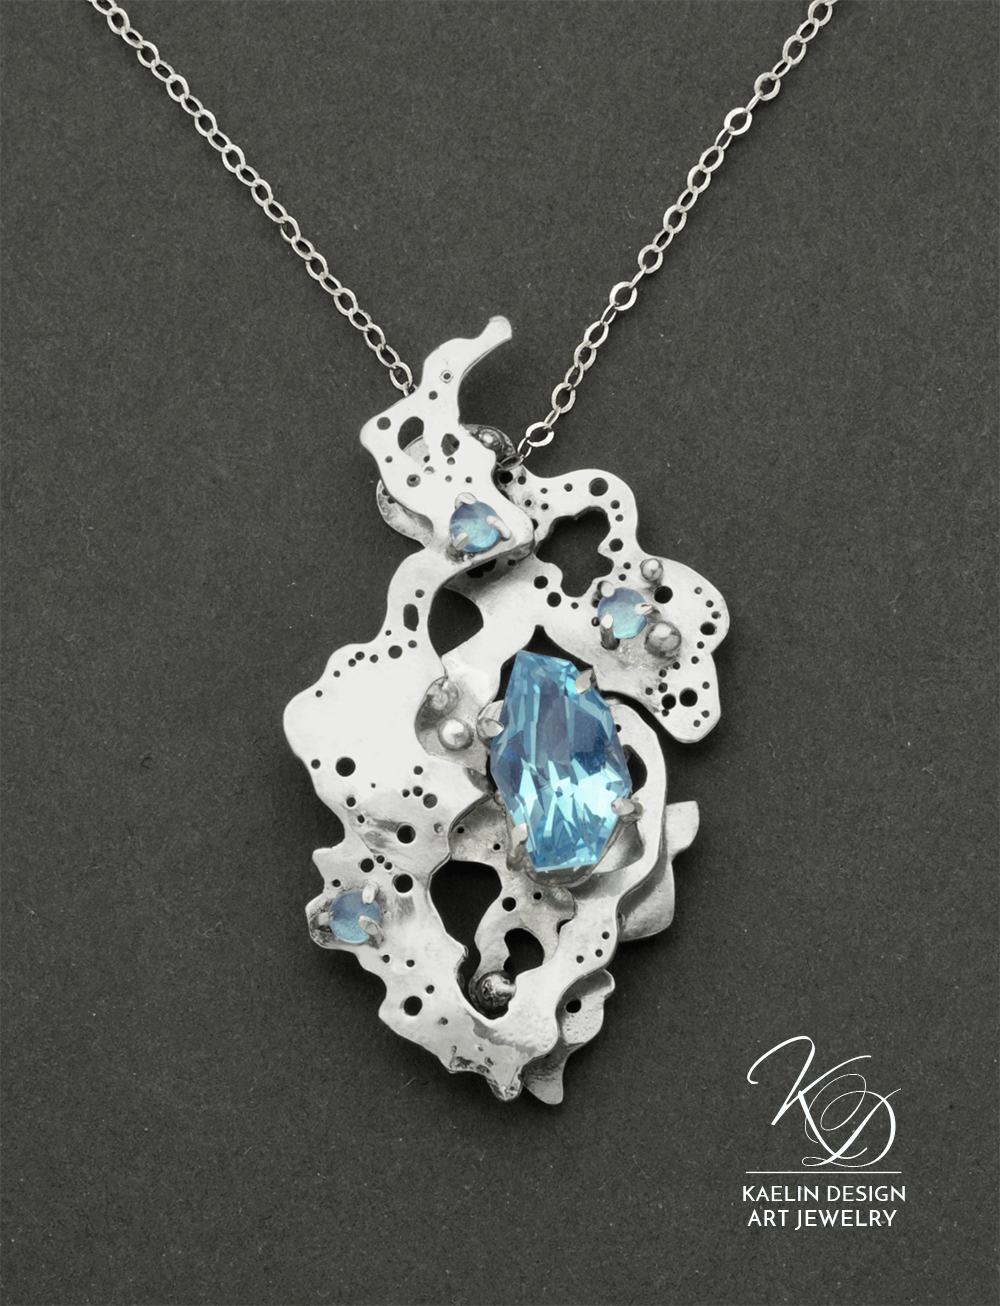 Ocean's Foam Fine Art Jewelry Pendant by Kaelin Design